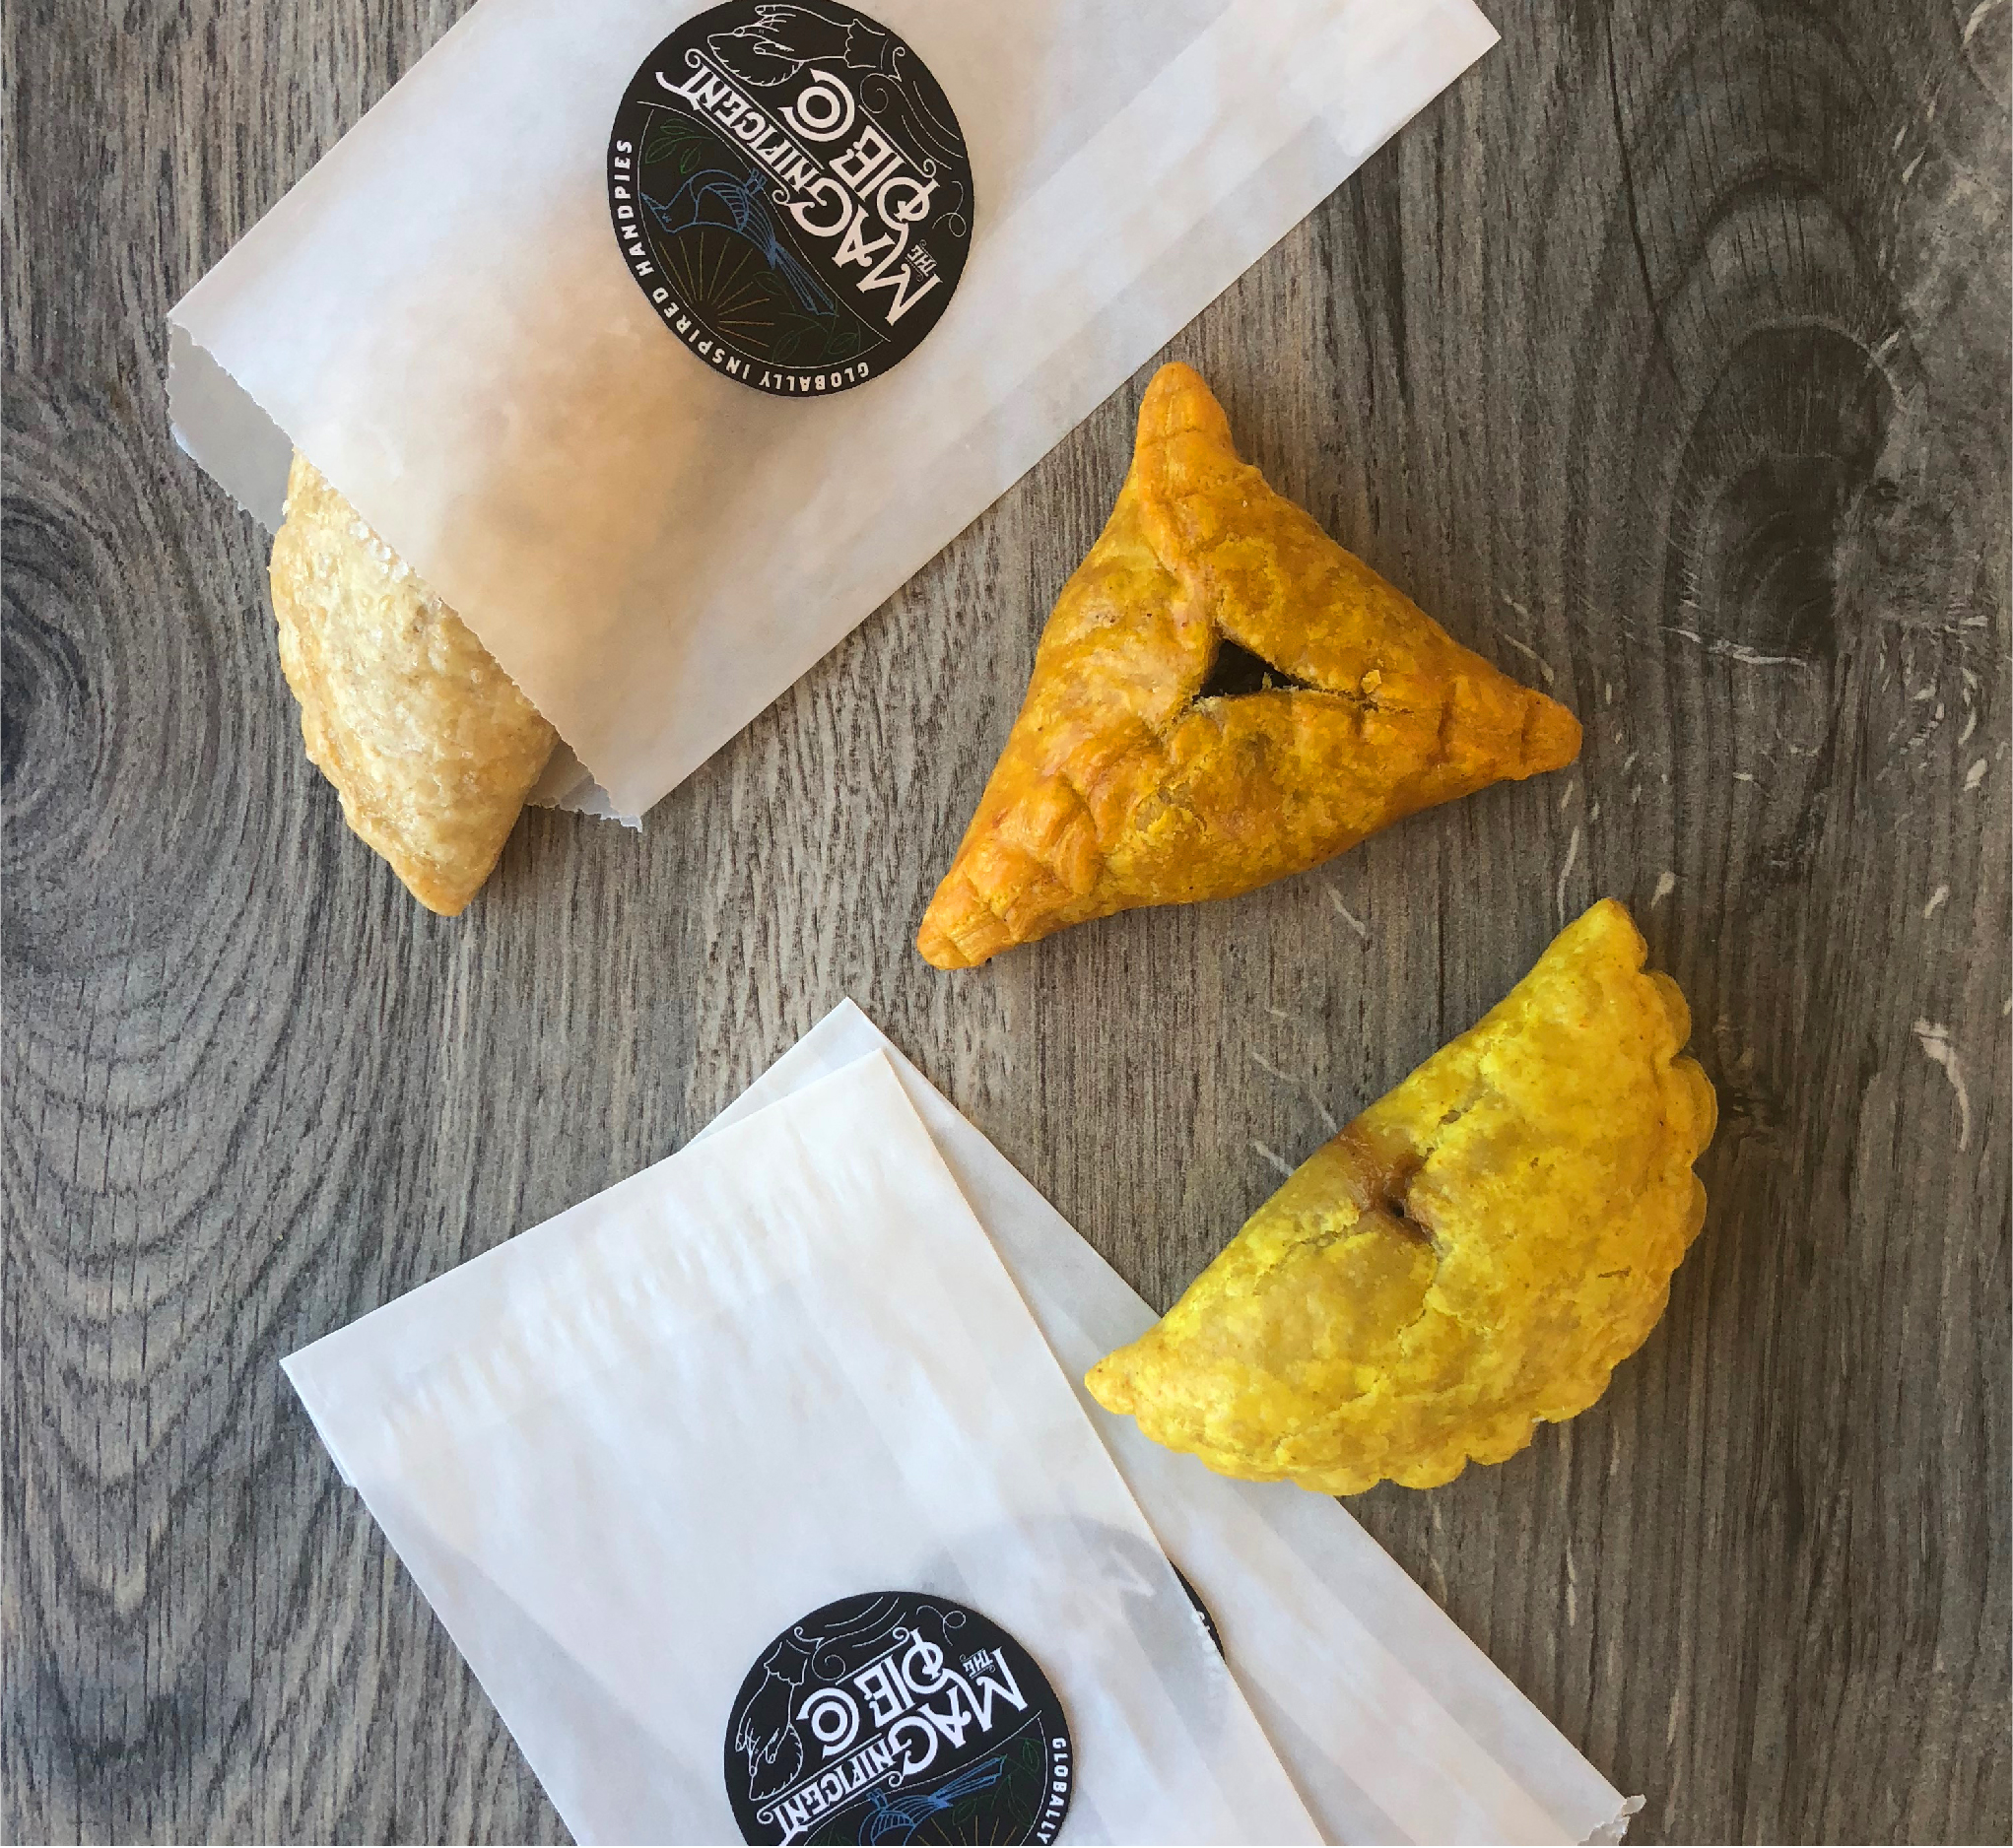 Magnificent Pie Co.    Coming Soon